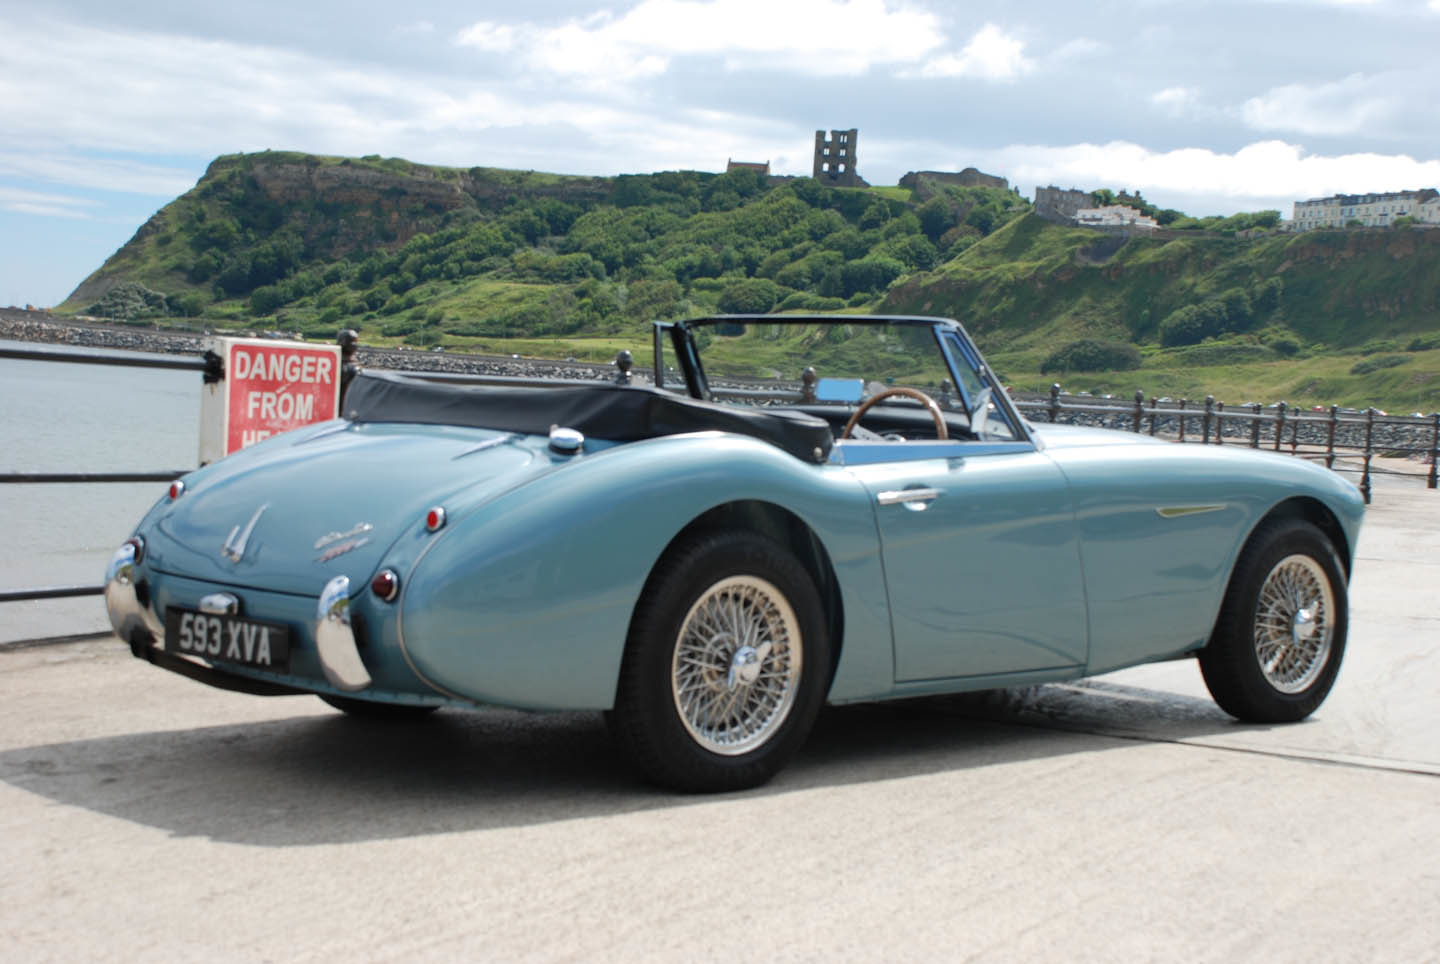 1962 Austin Healey 3000 Mk 2a BJ7 For Sale (picture 3 of 10)